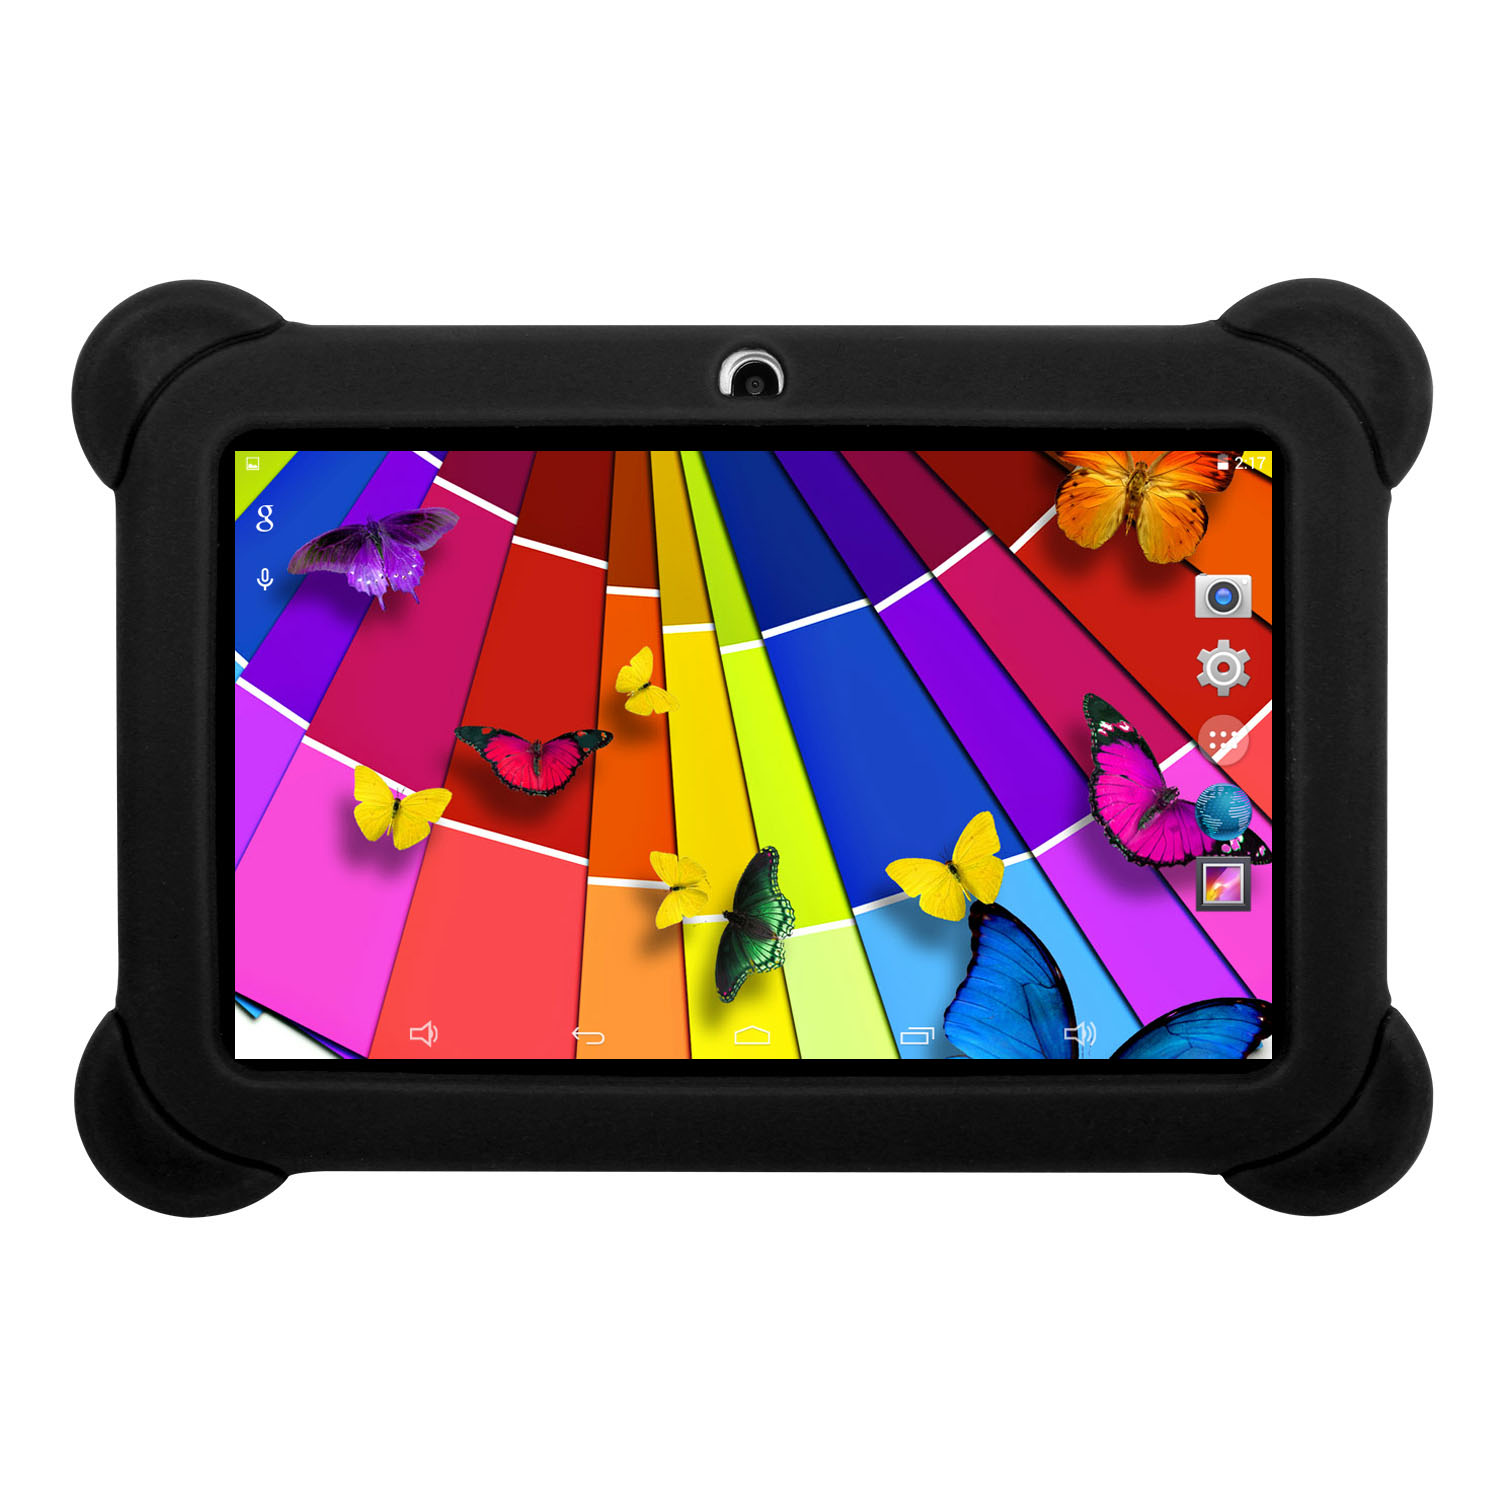 KOCASO DX758 7-Inch Quad-Core Android Kids Tablet - Black